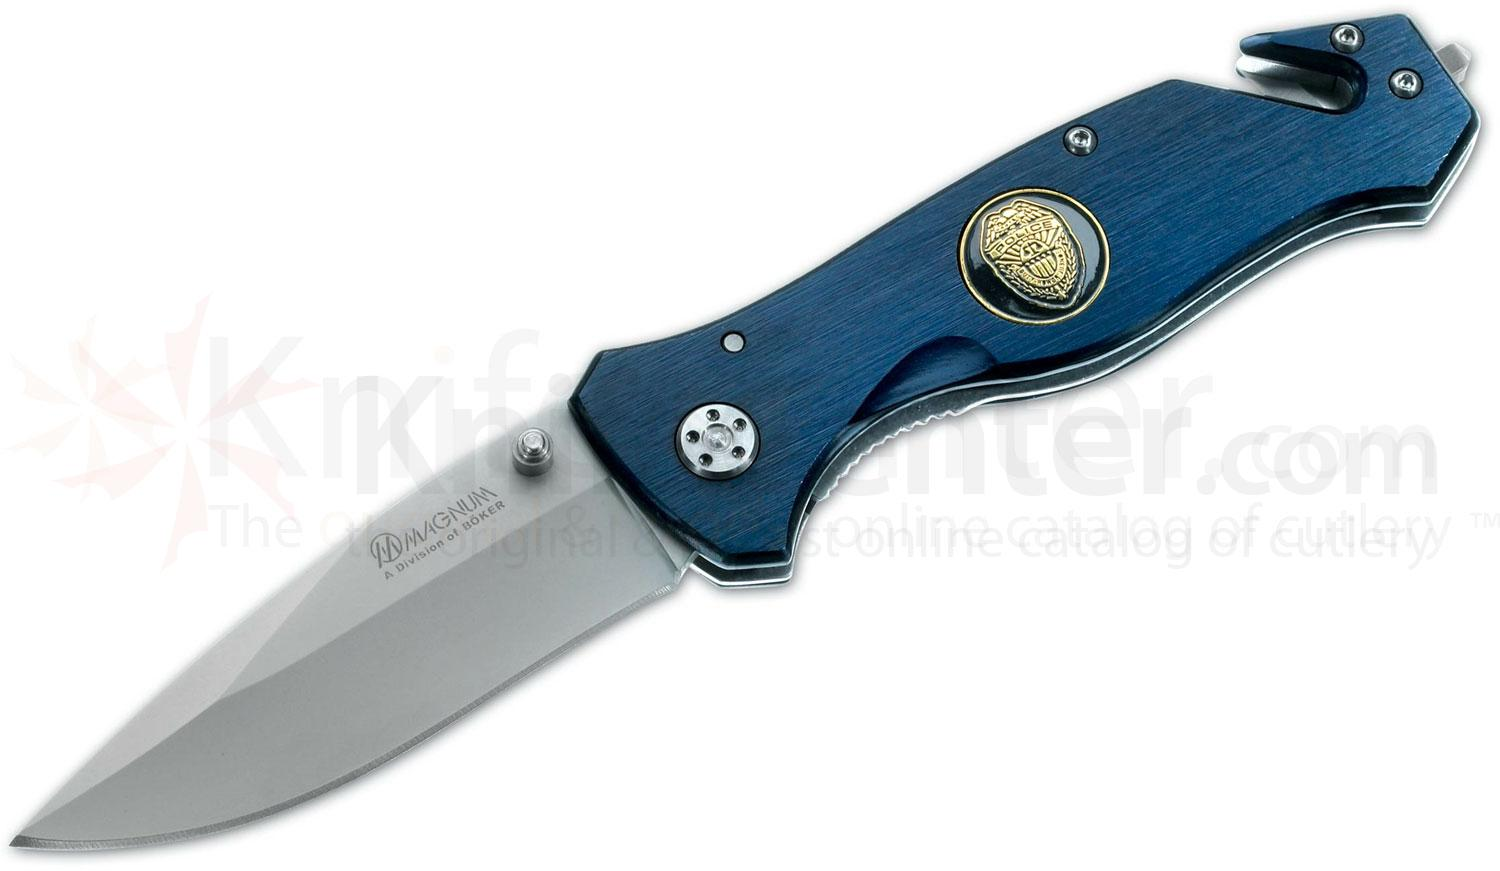 Boker Magnum Law Enforcement Rescue Folding Knife 3-3/8 inch Satin Plain Blade, Blue Aluminum Handles